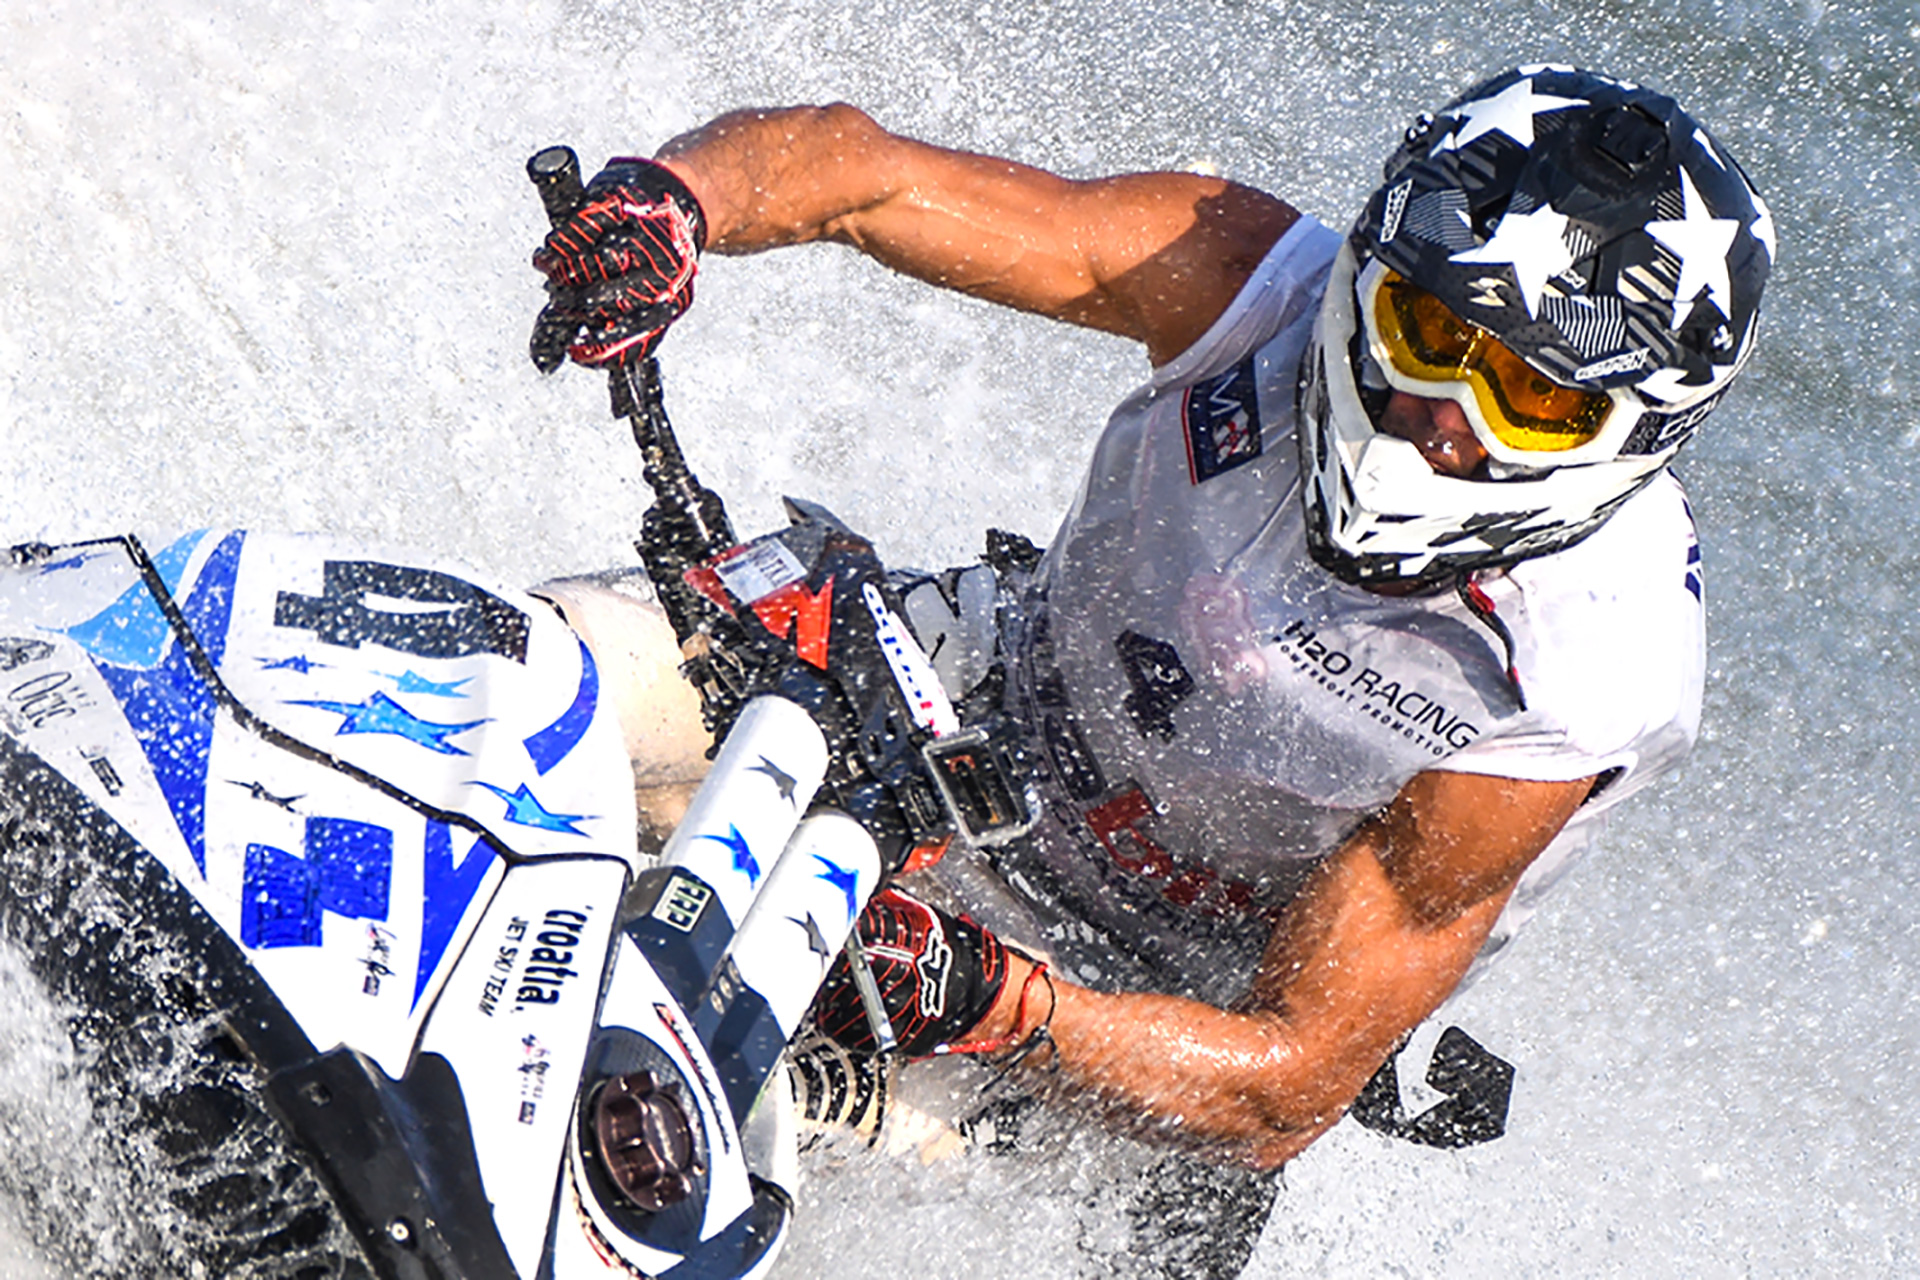 Aquabike World Championship Jetski Race